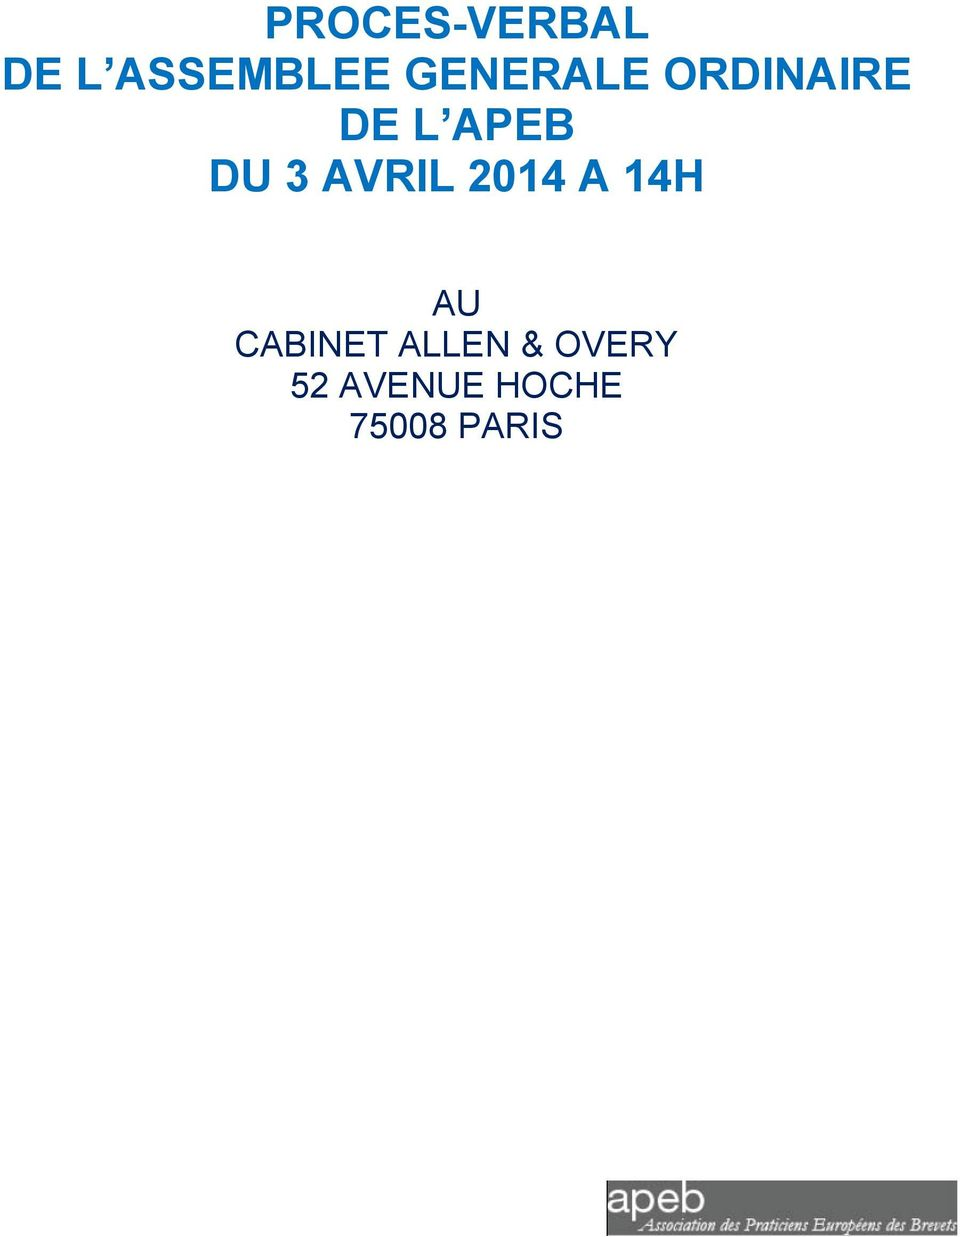 3 AVRIL 2014 A 14H AU CABINET